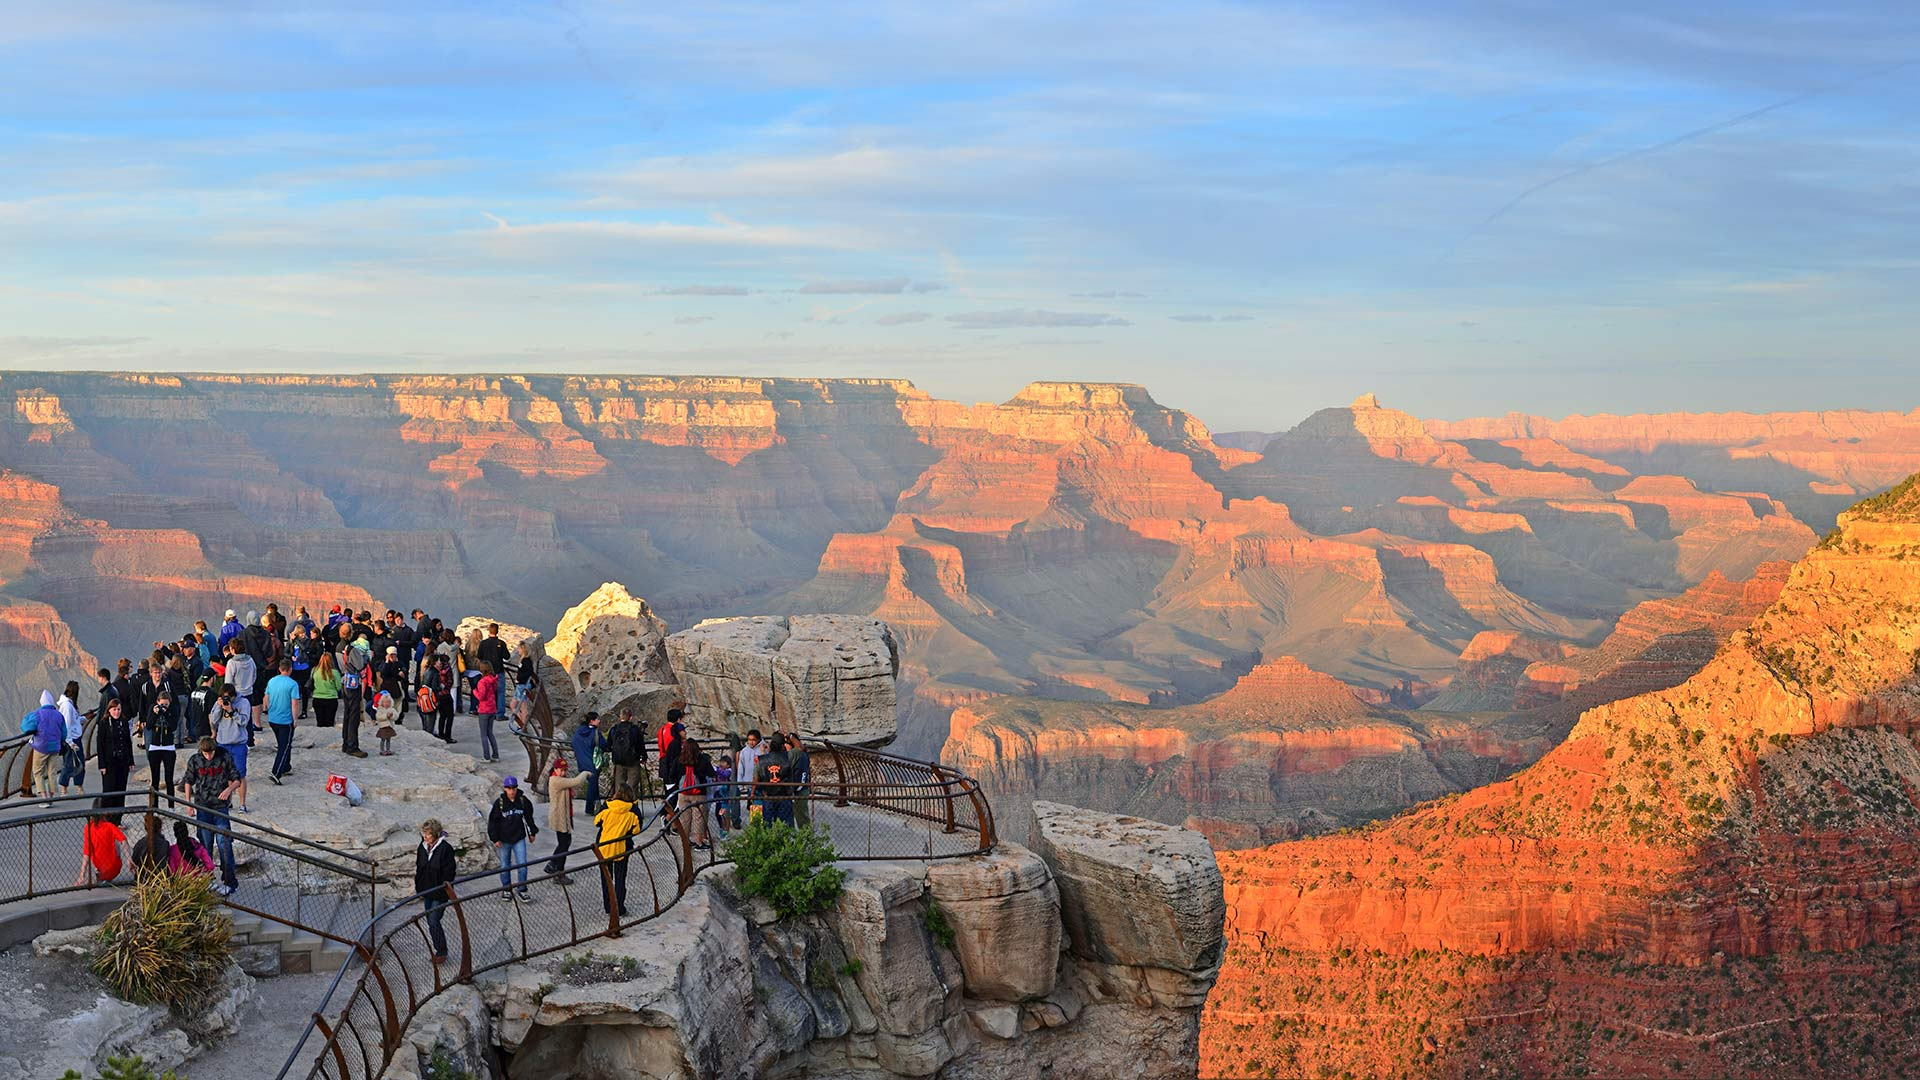 Visitors at Mather Point, at the South Rim of the Grand Canyon.